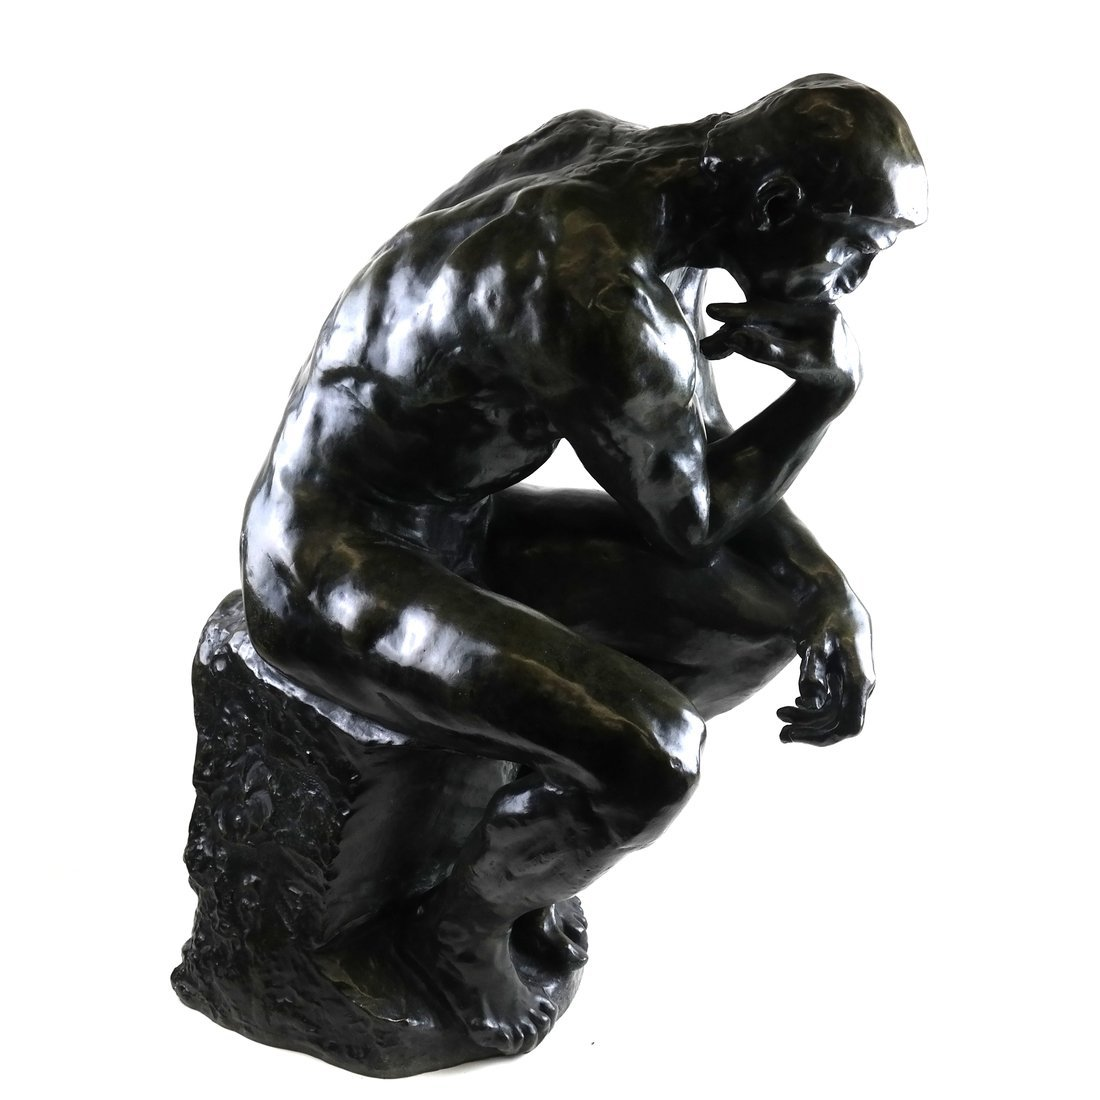 After Rodin, The Thinker, Bronze Figure